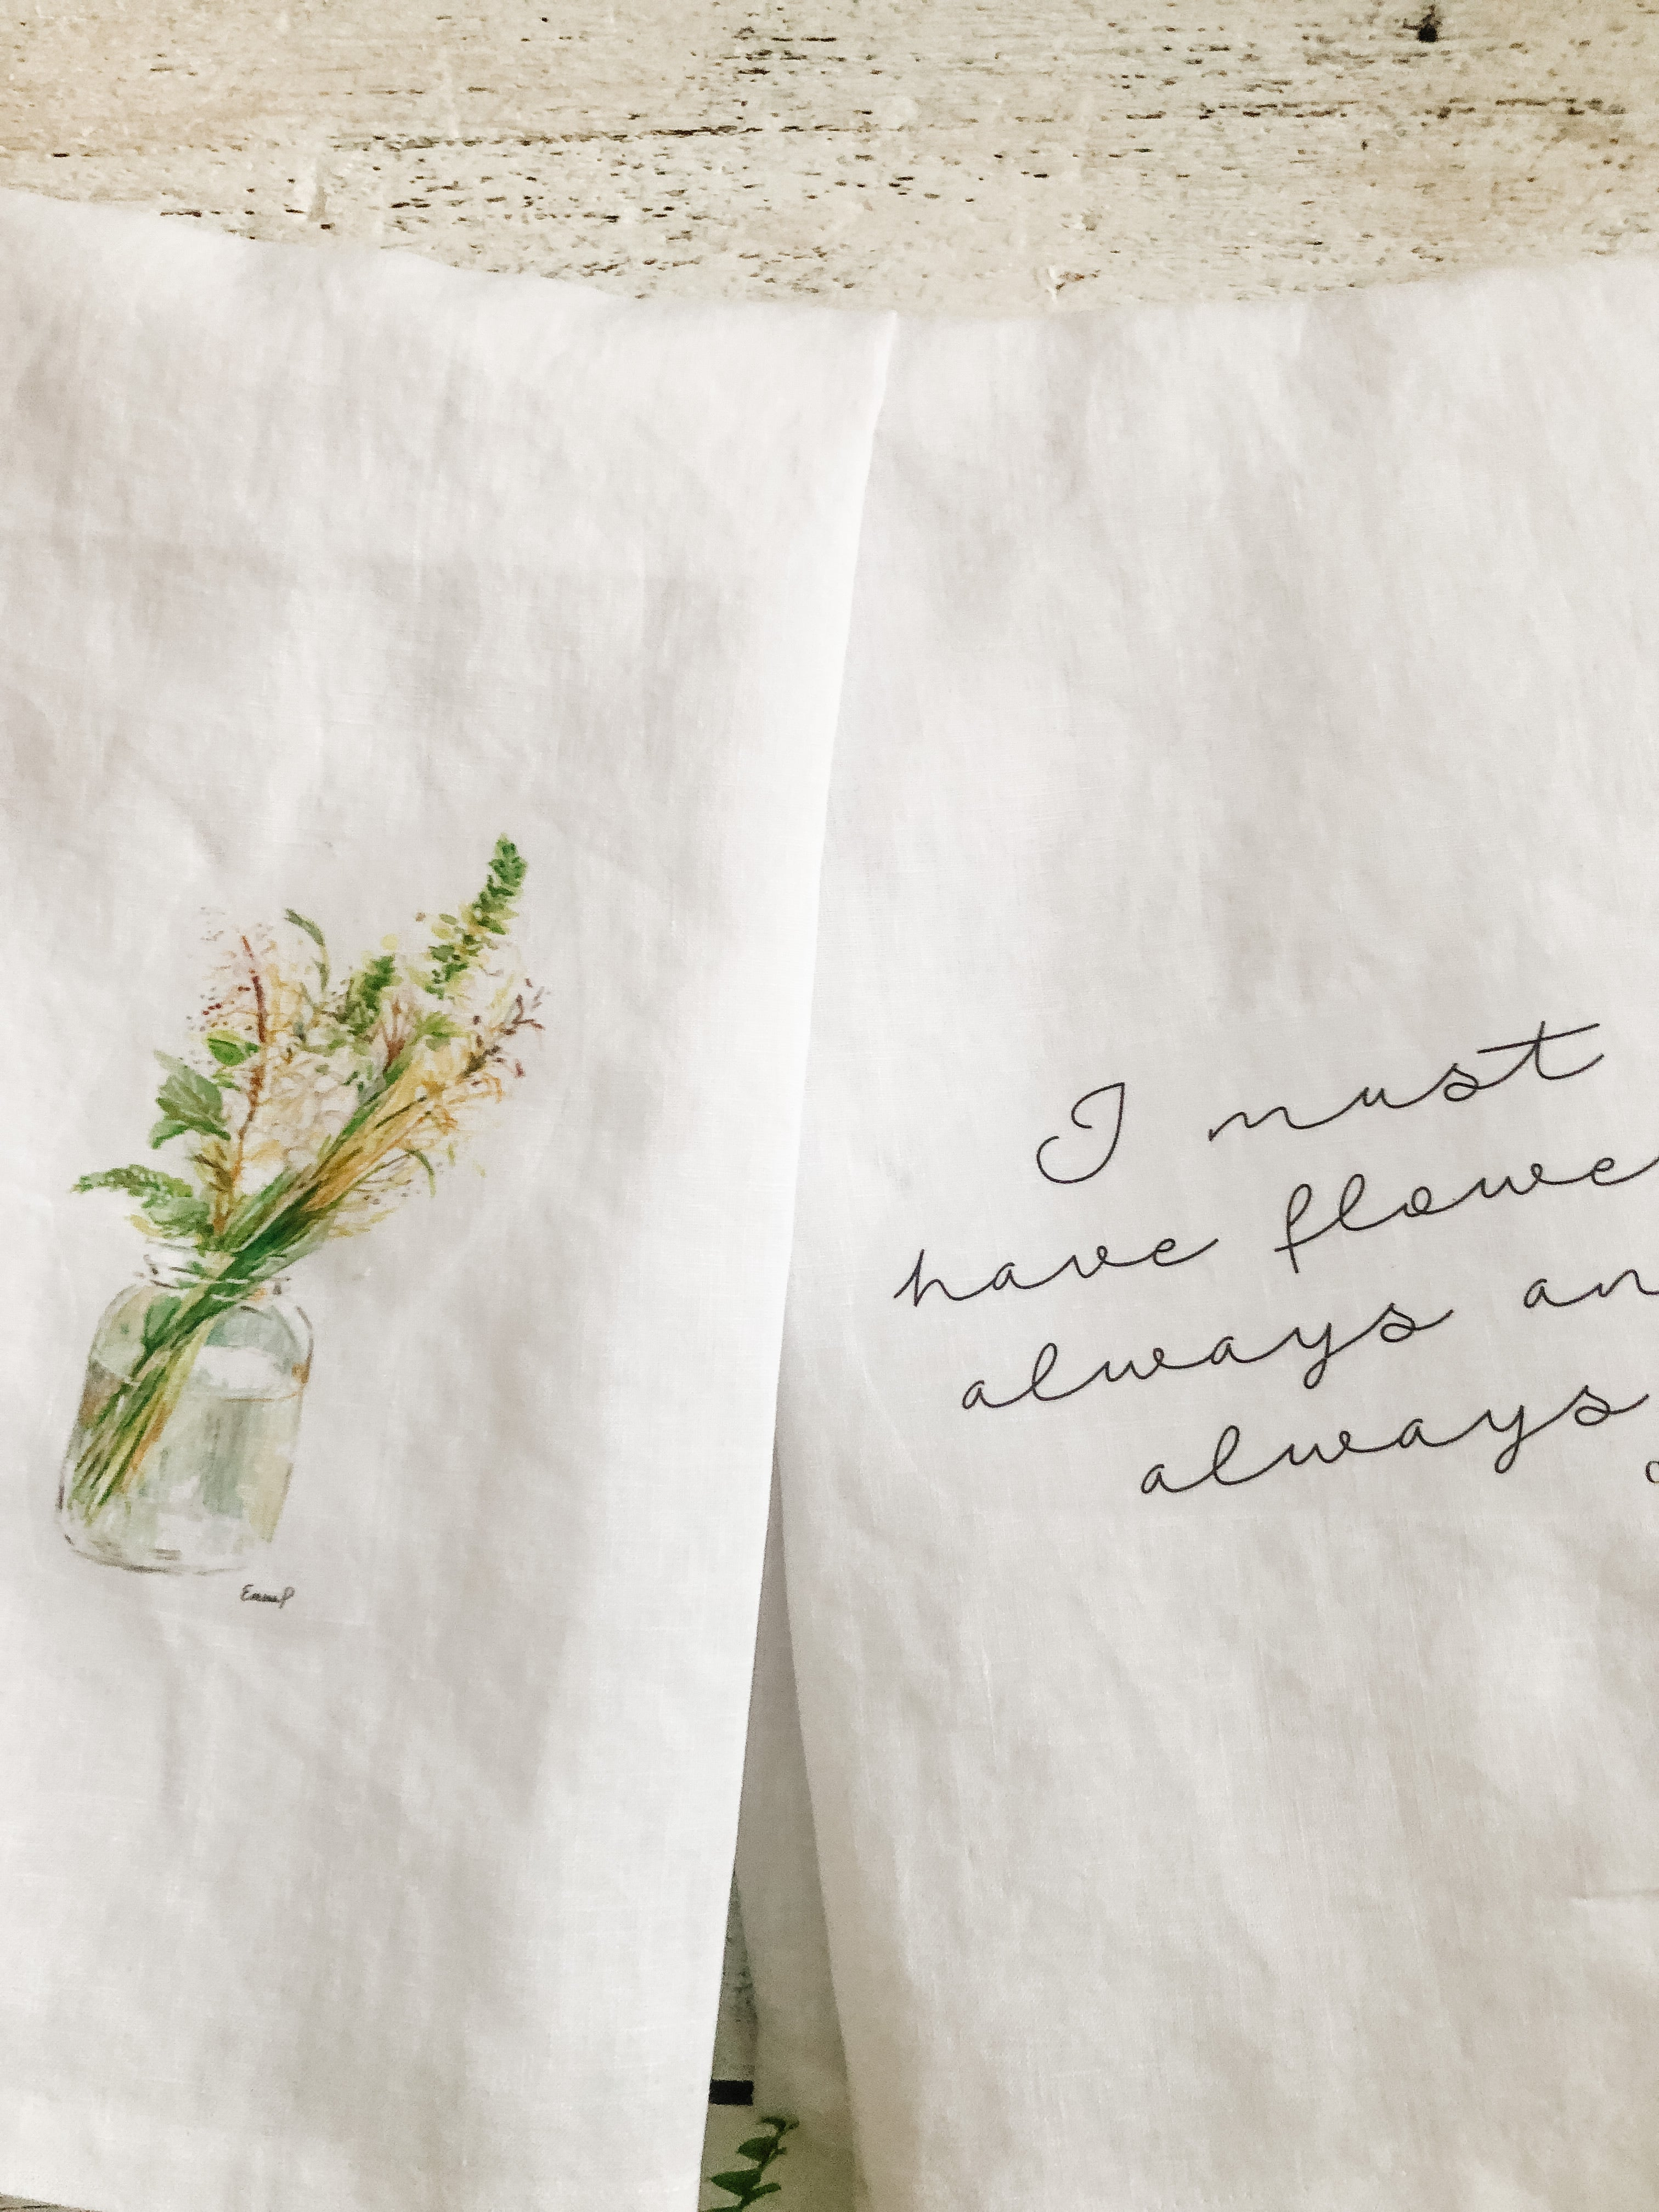 Tea towel set with wildflowers and Monet quote